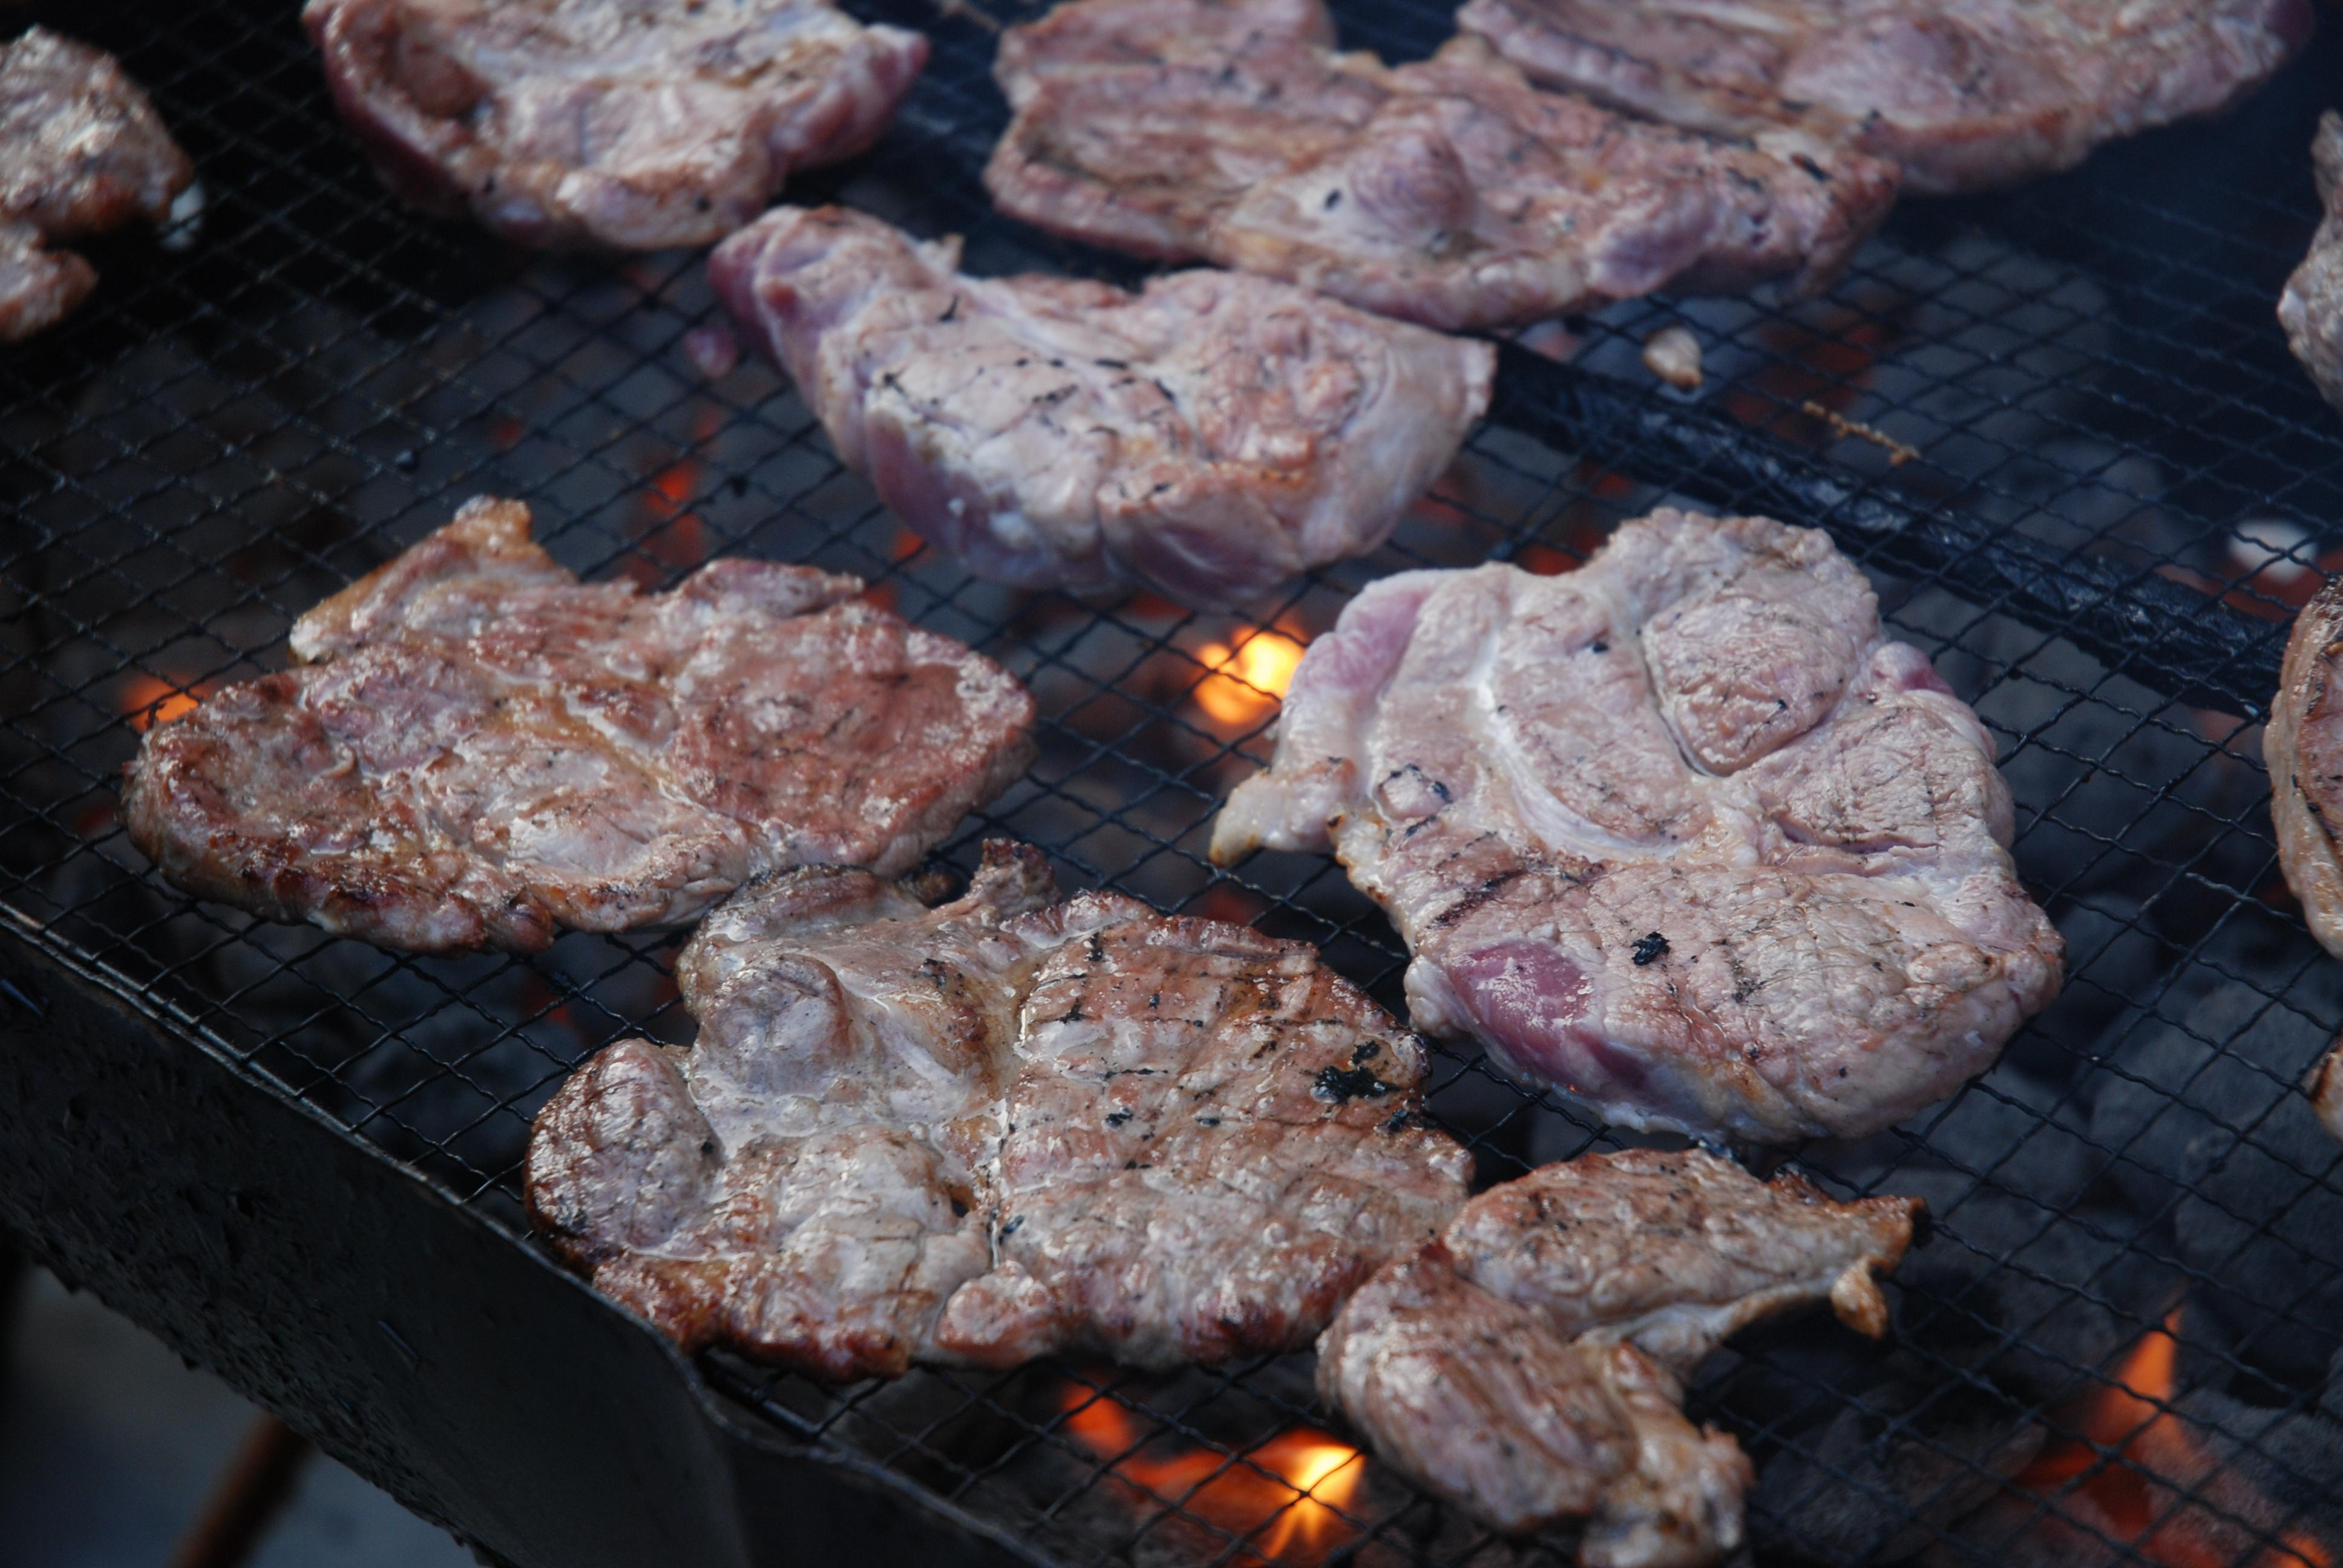 Steaks on the BBQ